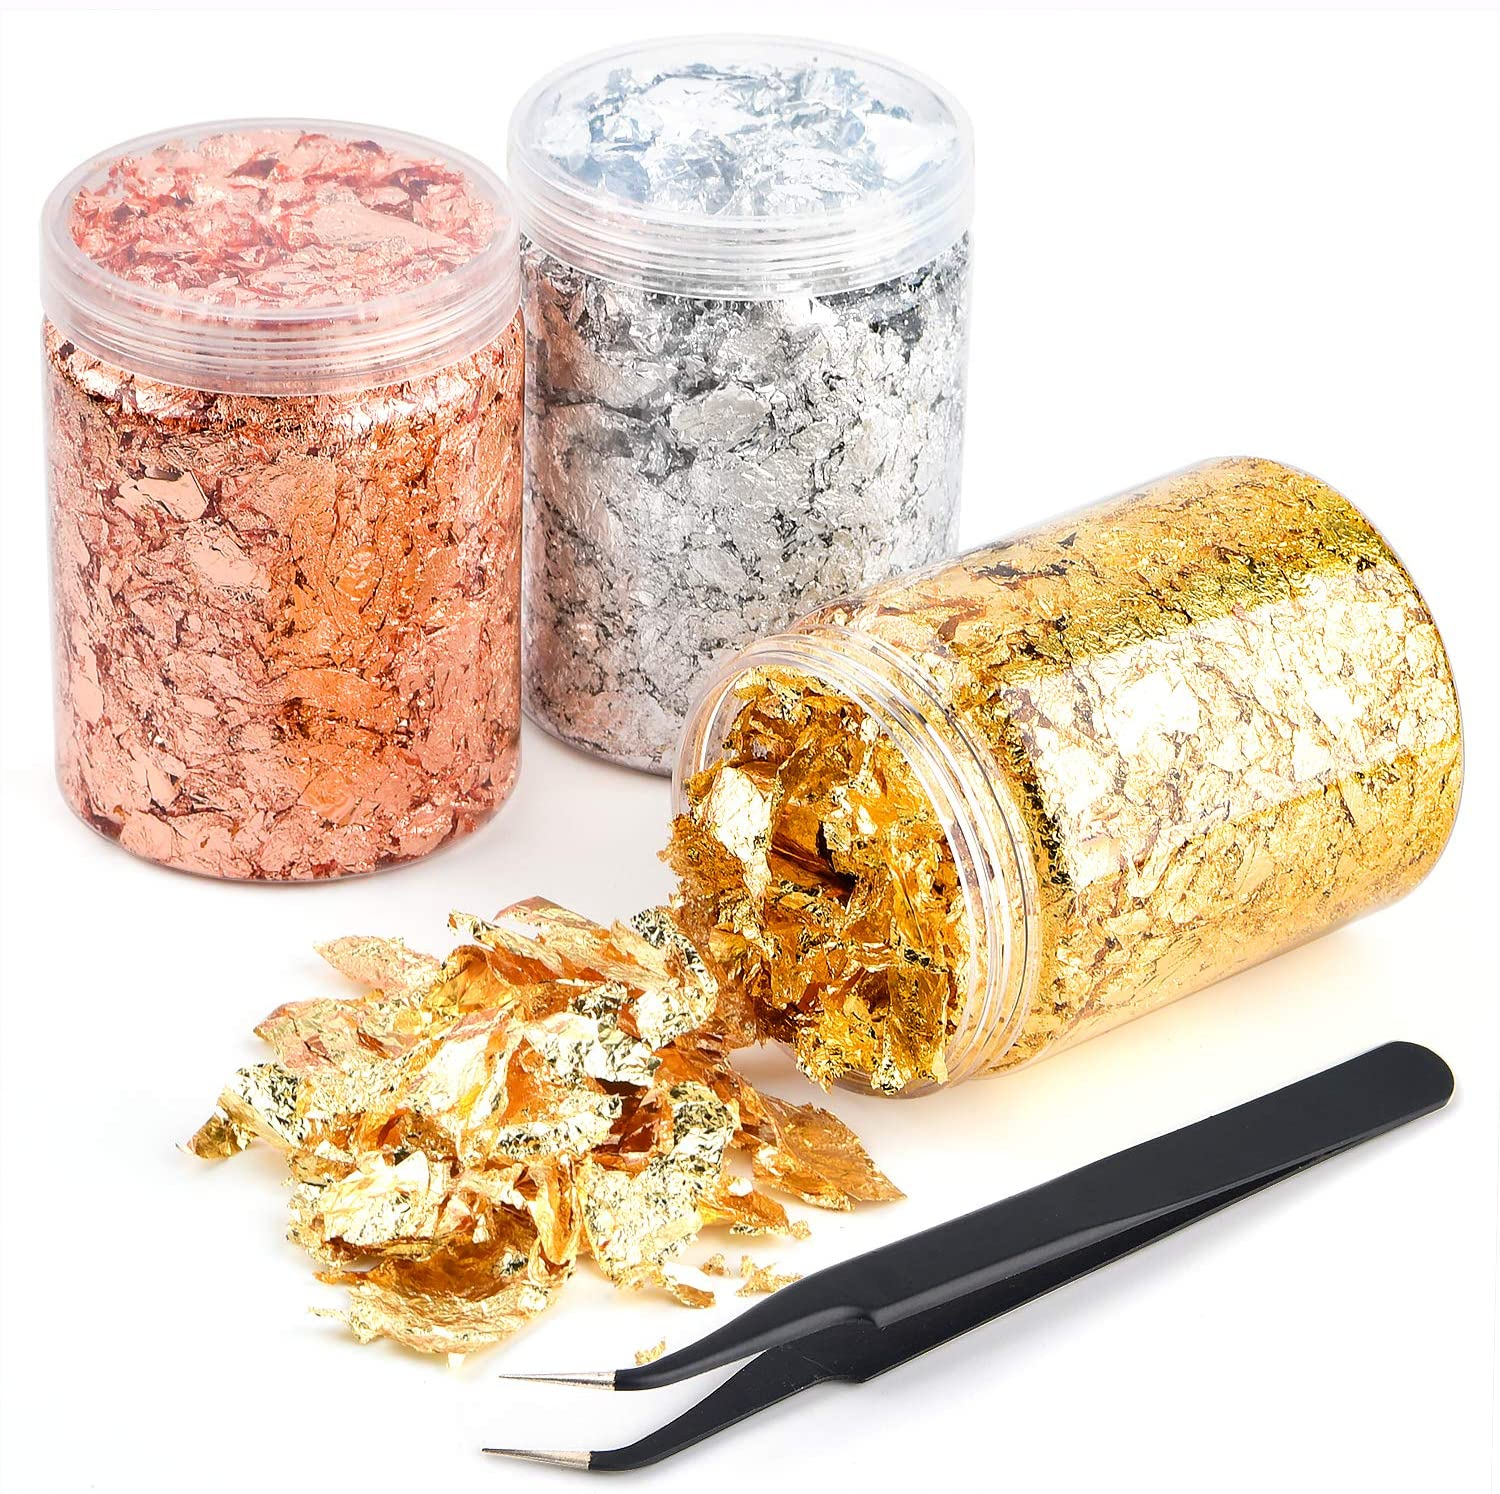 Coopay 45 Grams Gold Foil Flakes Imitation Gold Silver Copper, 3 Bottles Foil Flakes Metallic Leaf for Nails, Painting, Glitter Arts Crafts Jewelry Home Decoration, 15 Grams/Bottle